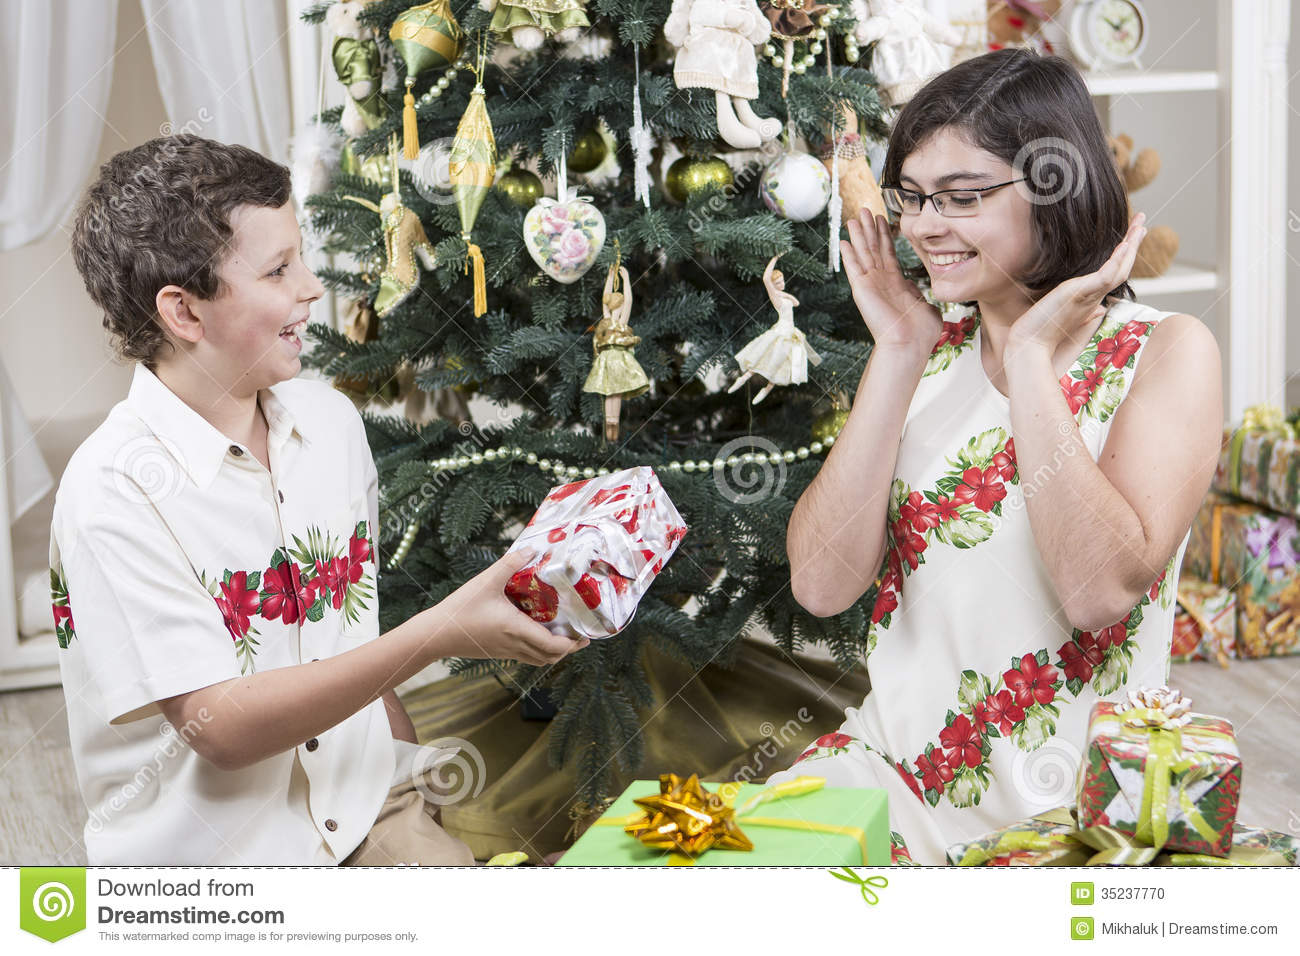 Giving Christmas gifts stock photo. Image of holds, ribbons - 35237770